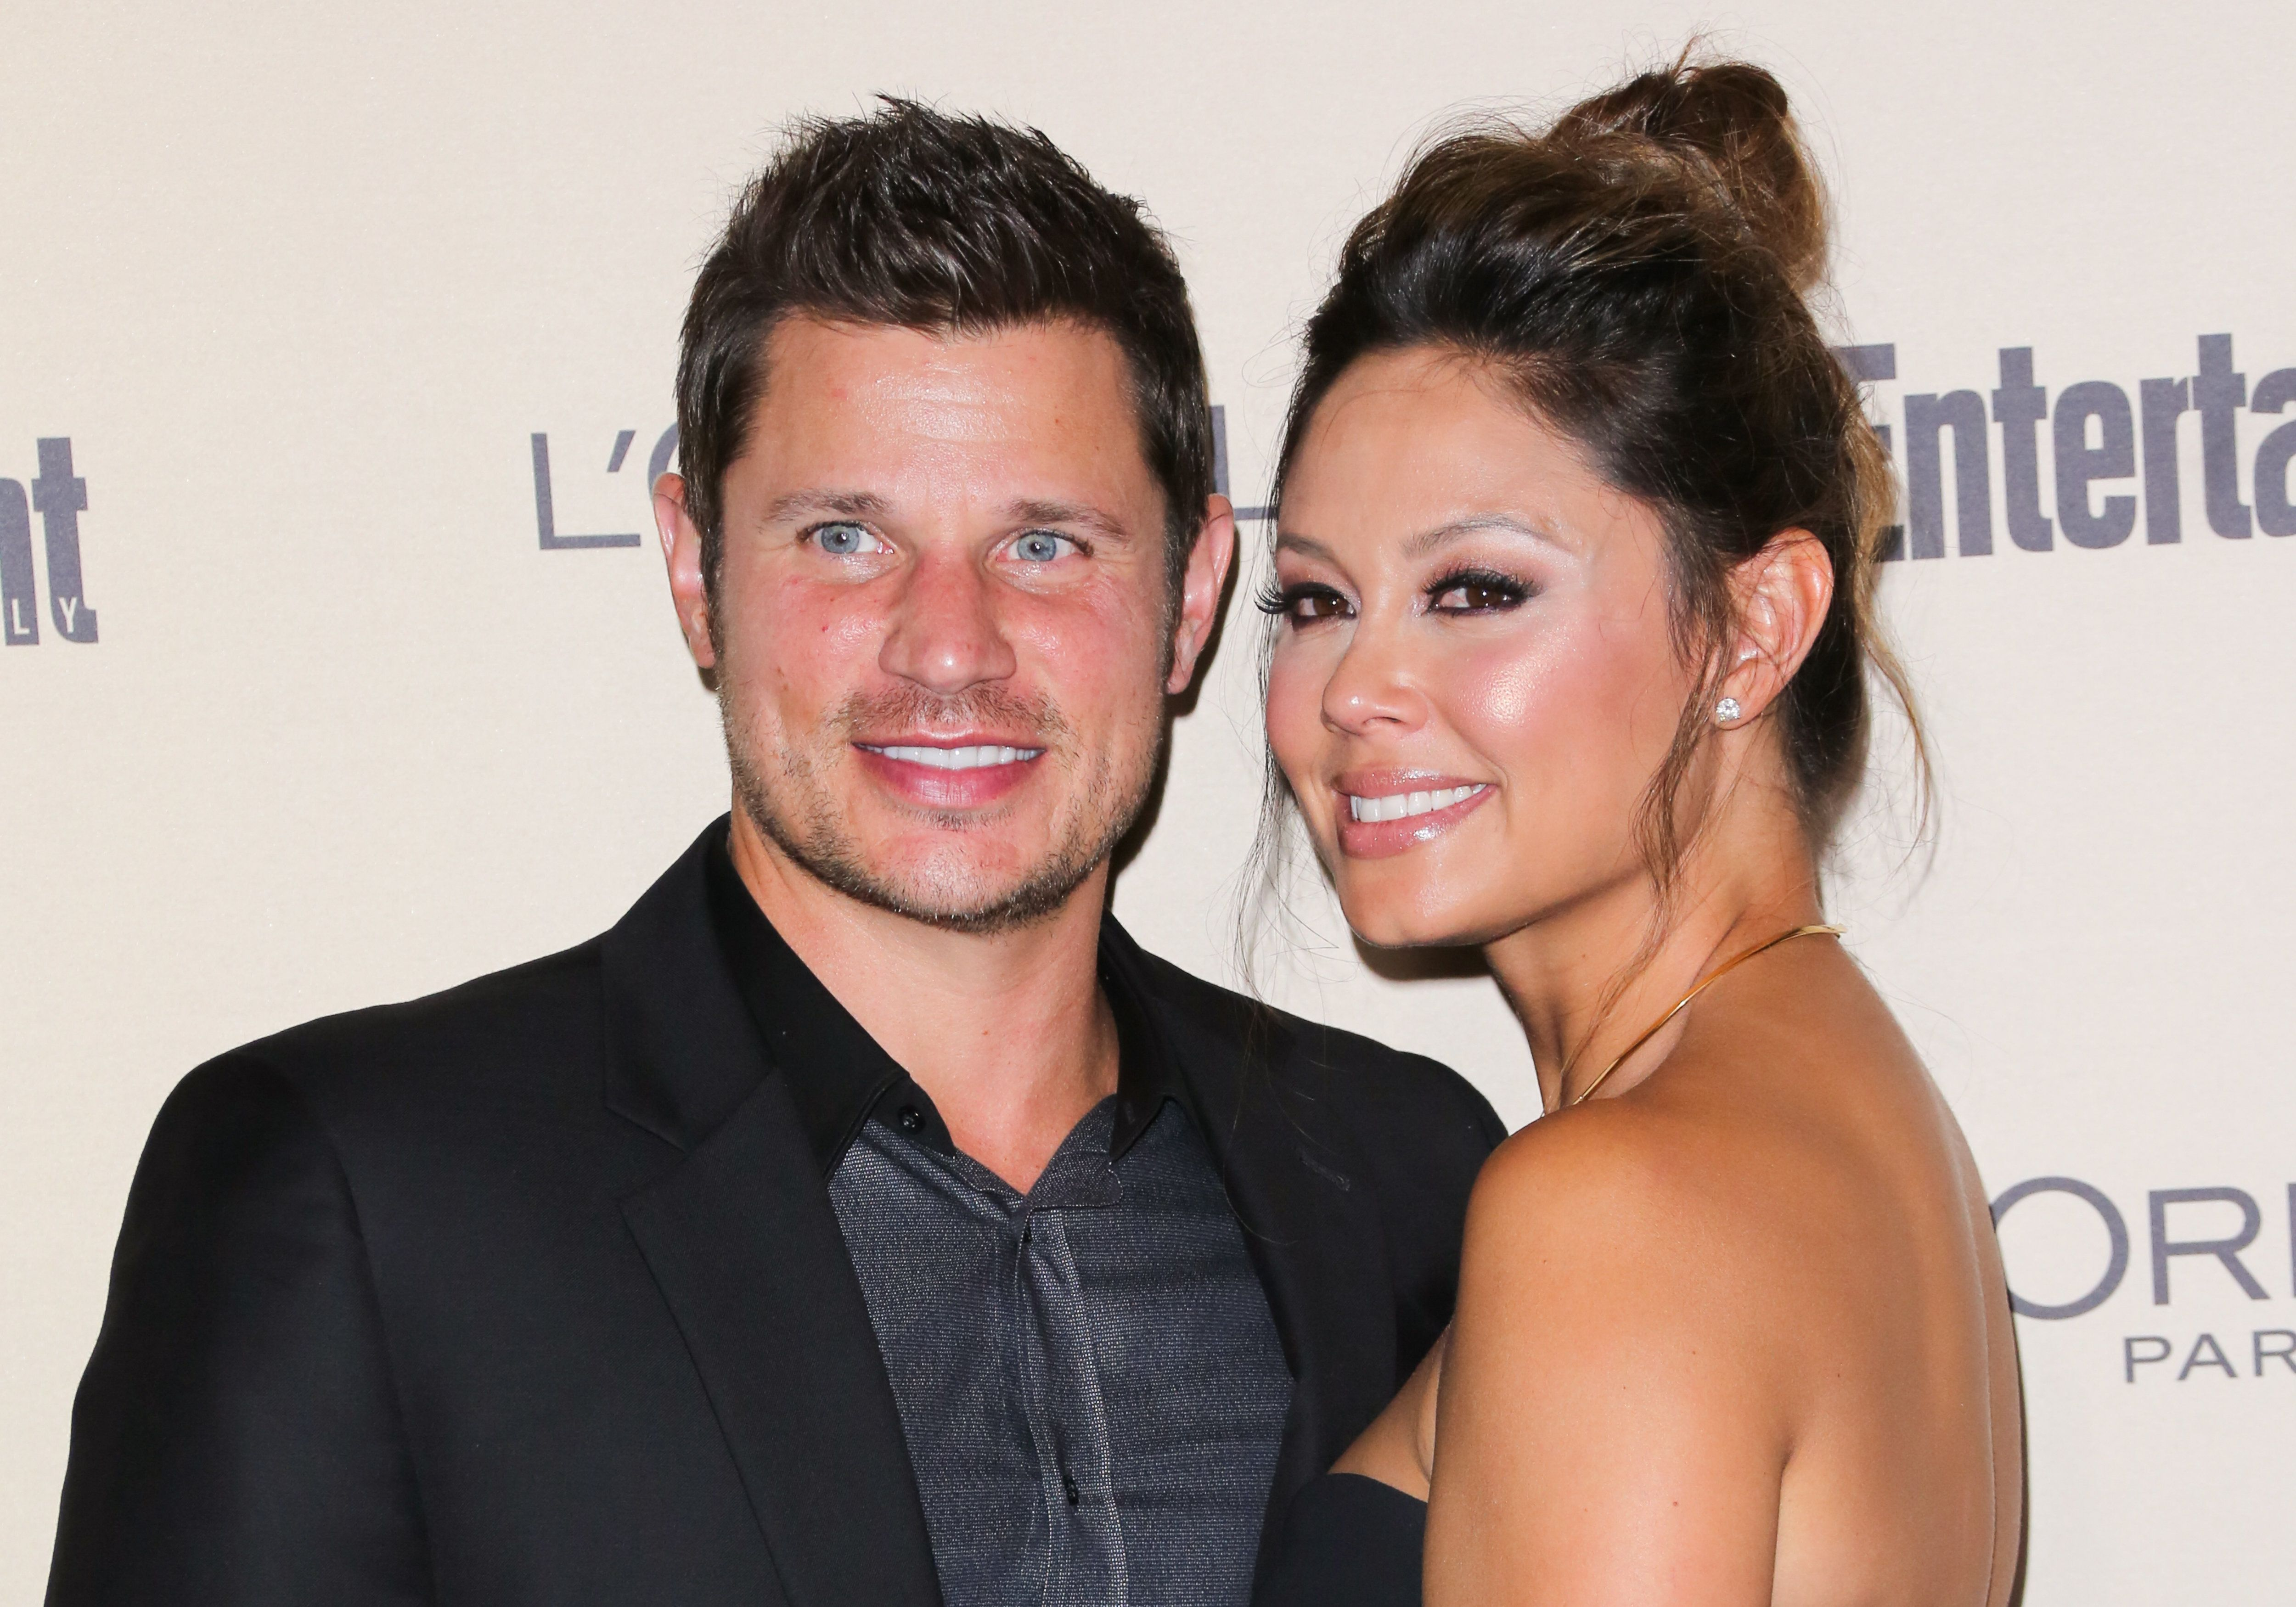 Singer / TV Personality Nick Lachey (L) and TV Personality Vanessa Lachey (R) attend the 2015 Entertainment Weekly Pre-Emmy party at Fig & Olive Melrose Place on September 18, 2015 in West Hollywood, California.